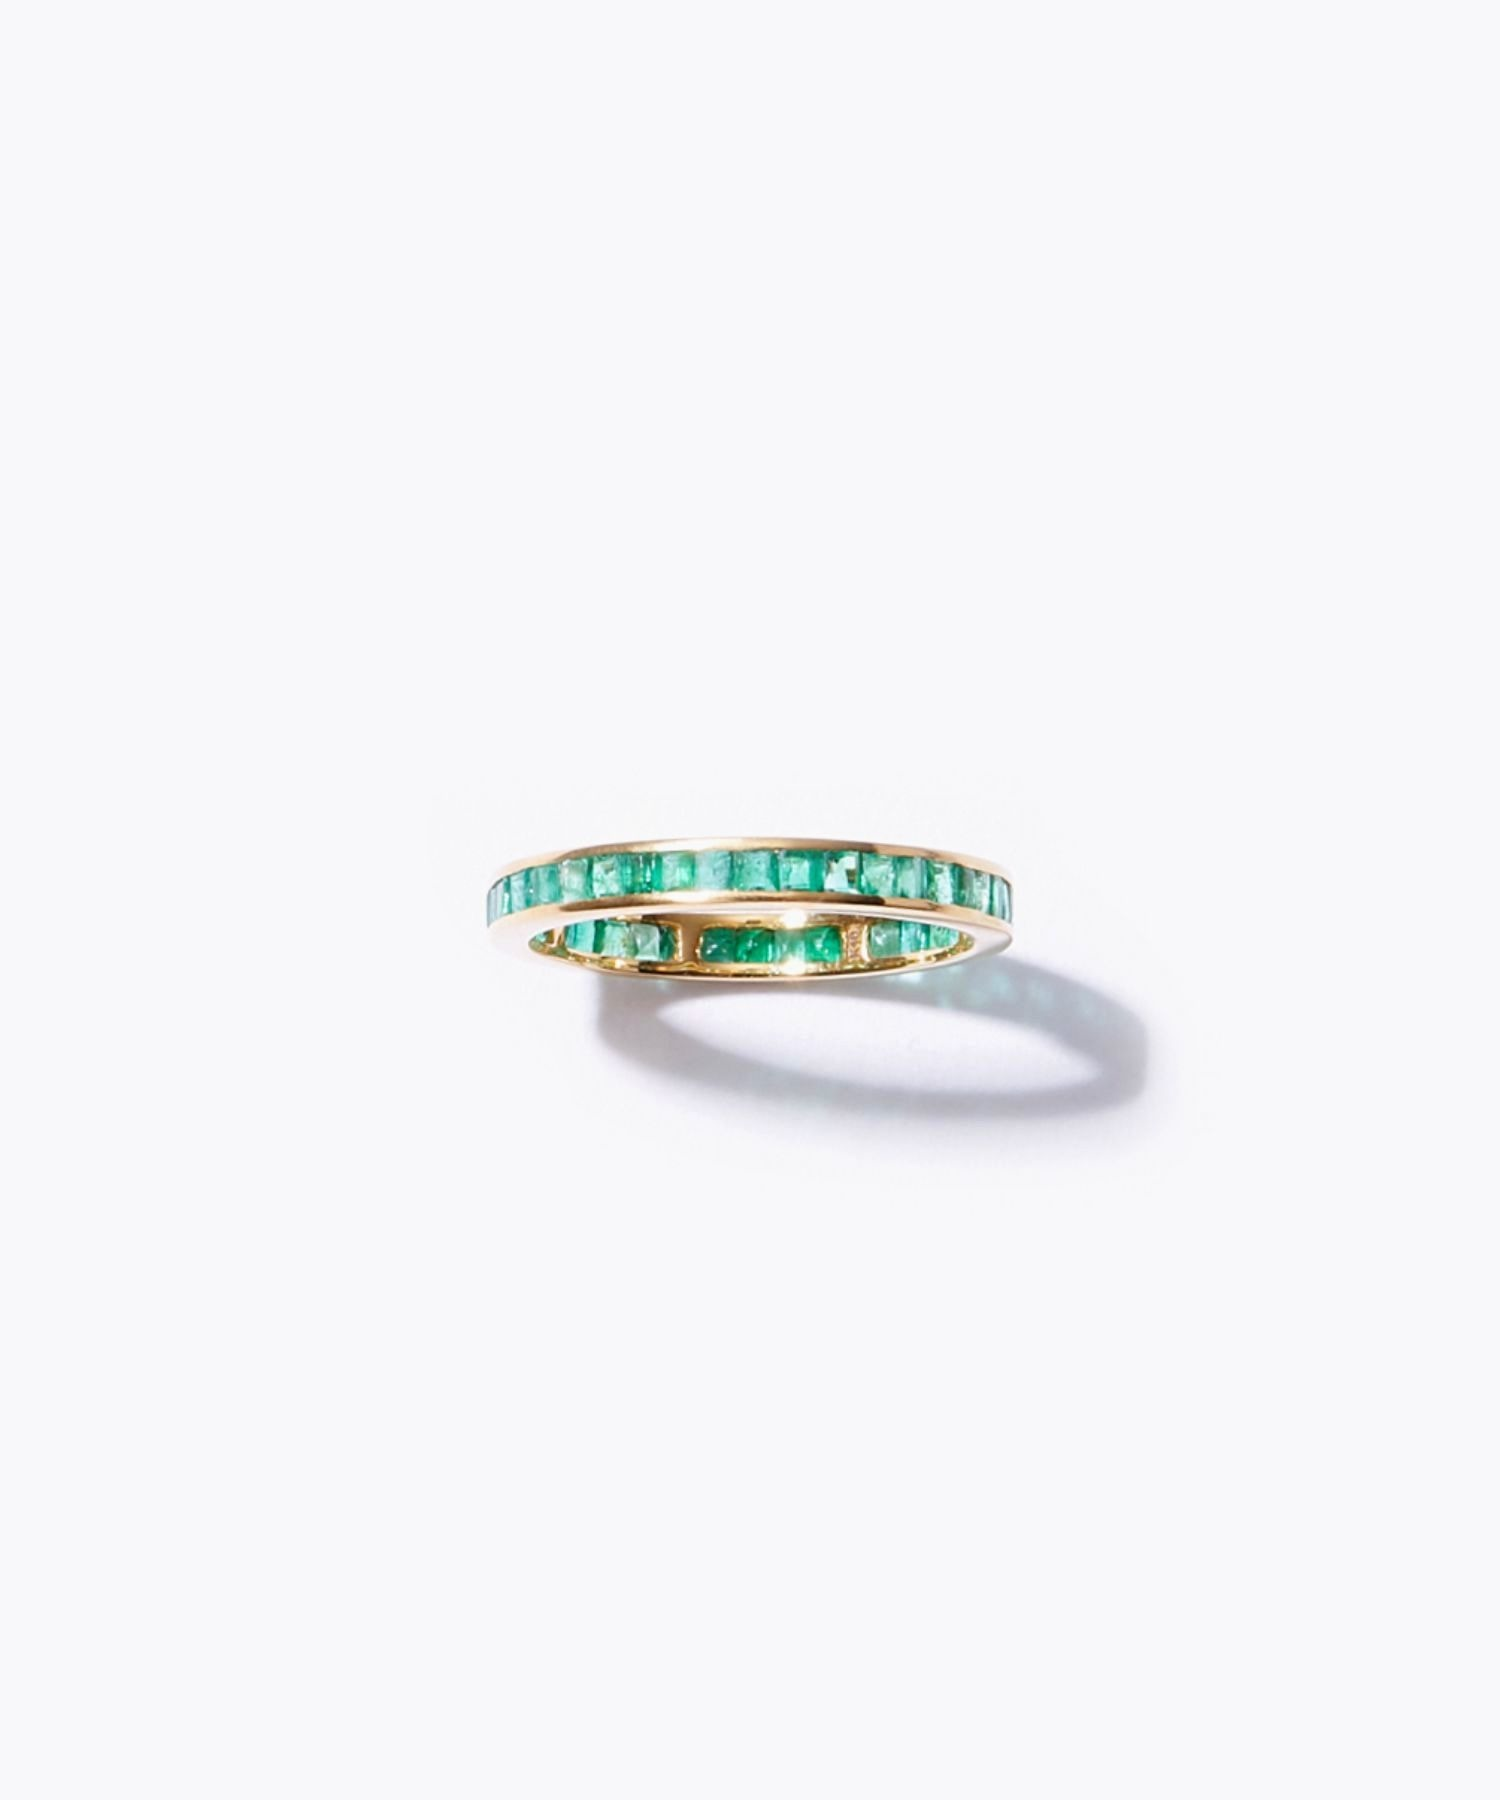 [eden] K10 baguette emerald eternity ring